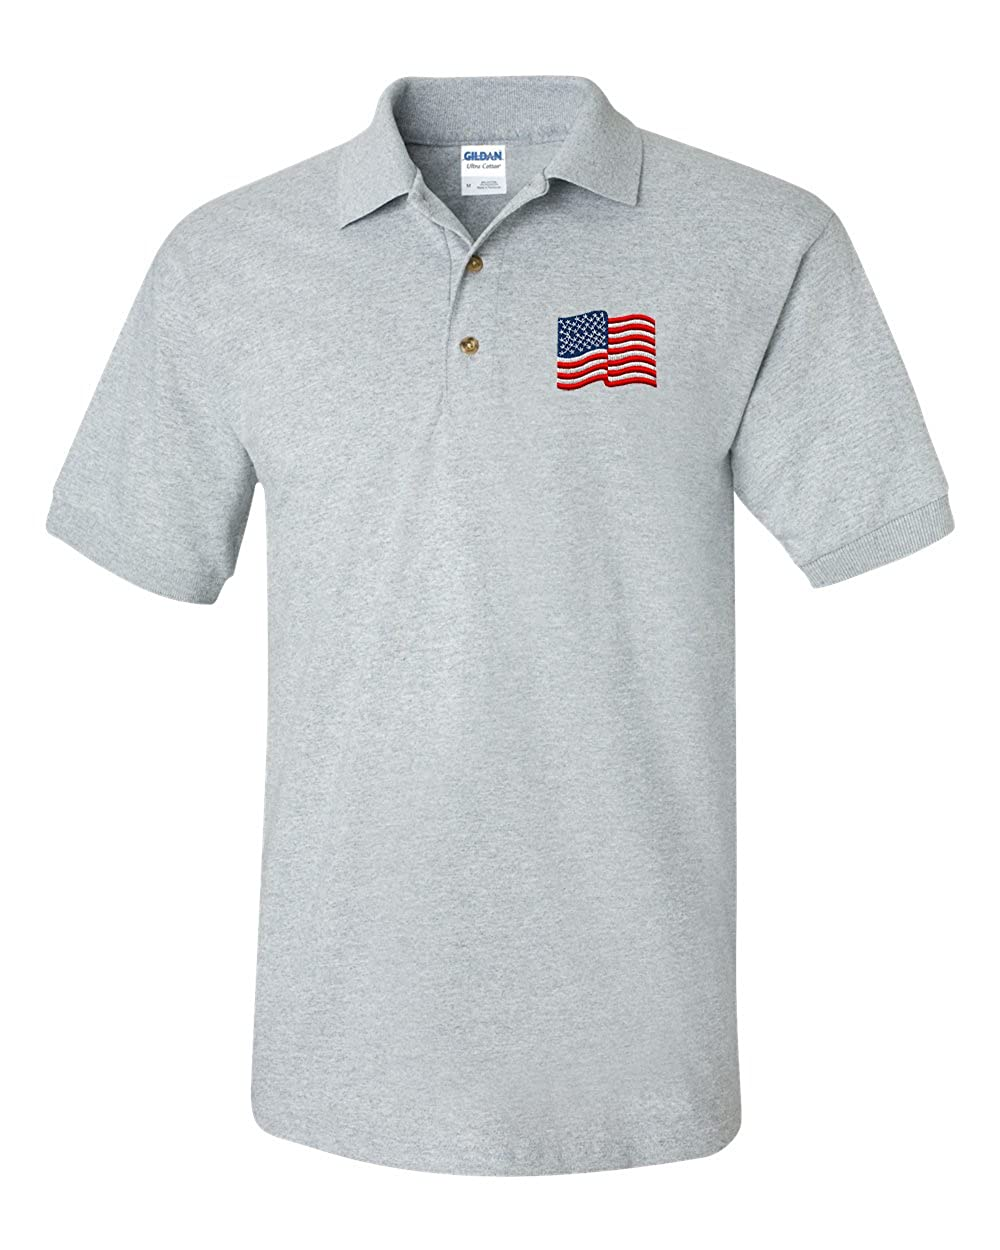 American Flag Custom Personalized Embroidery Embroidered Golf Polo